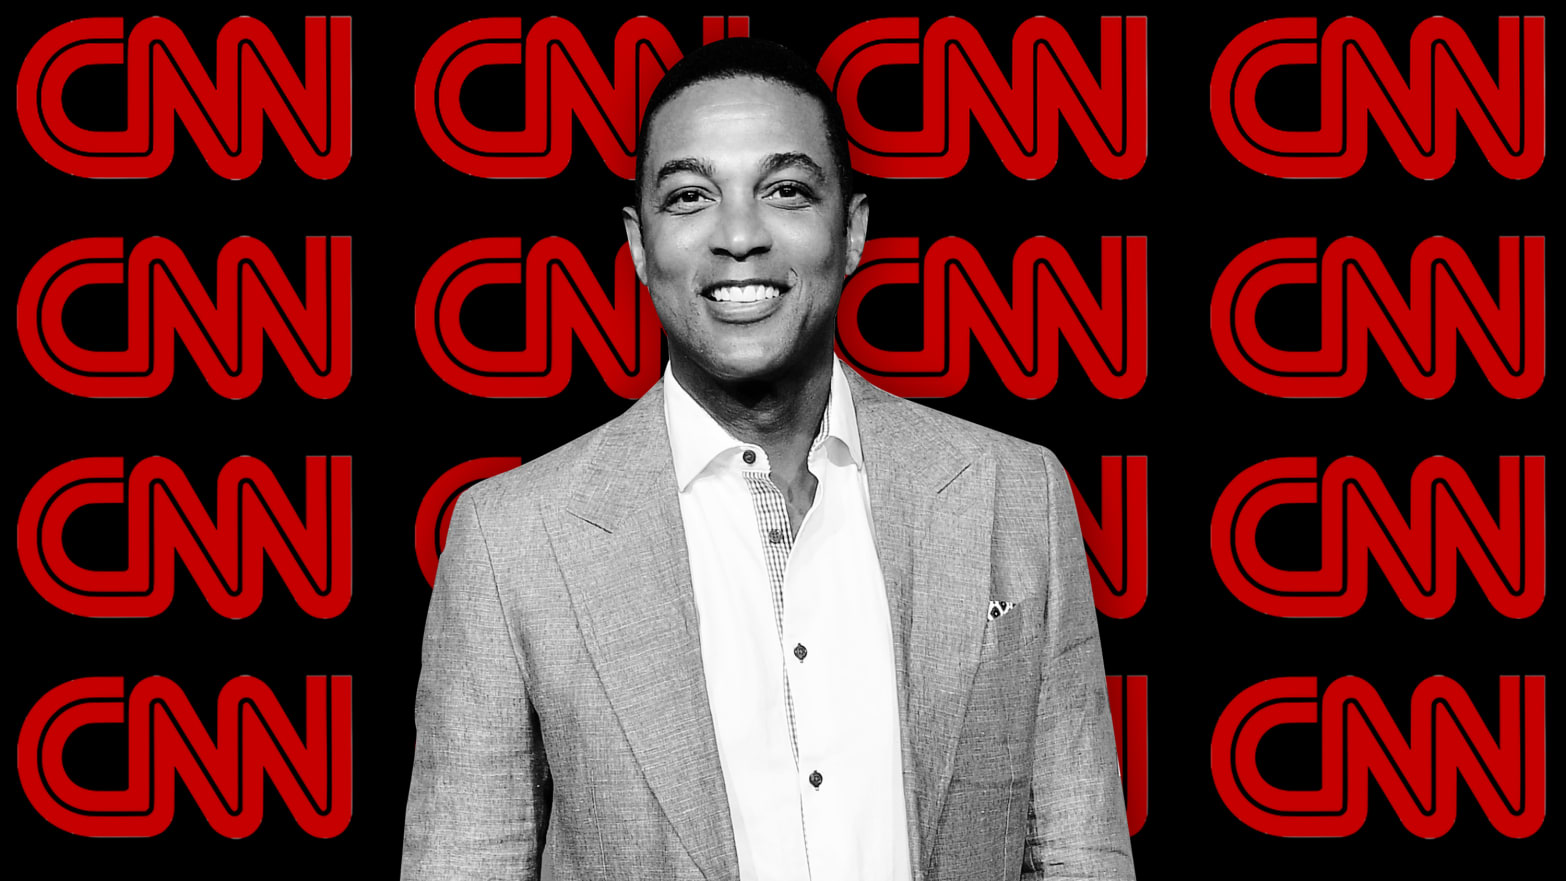 Cnn Cnn S Don Lemon Trump Era Level Of Toxicity And Fears For